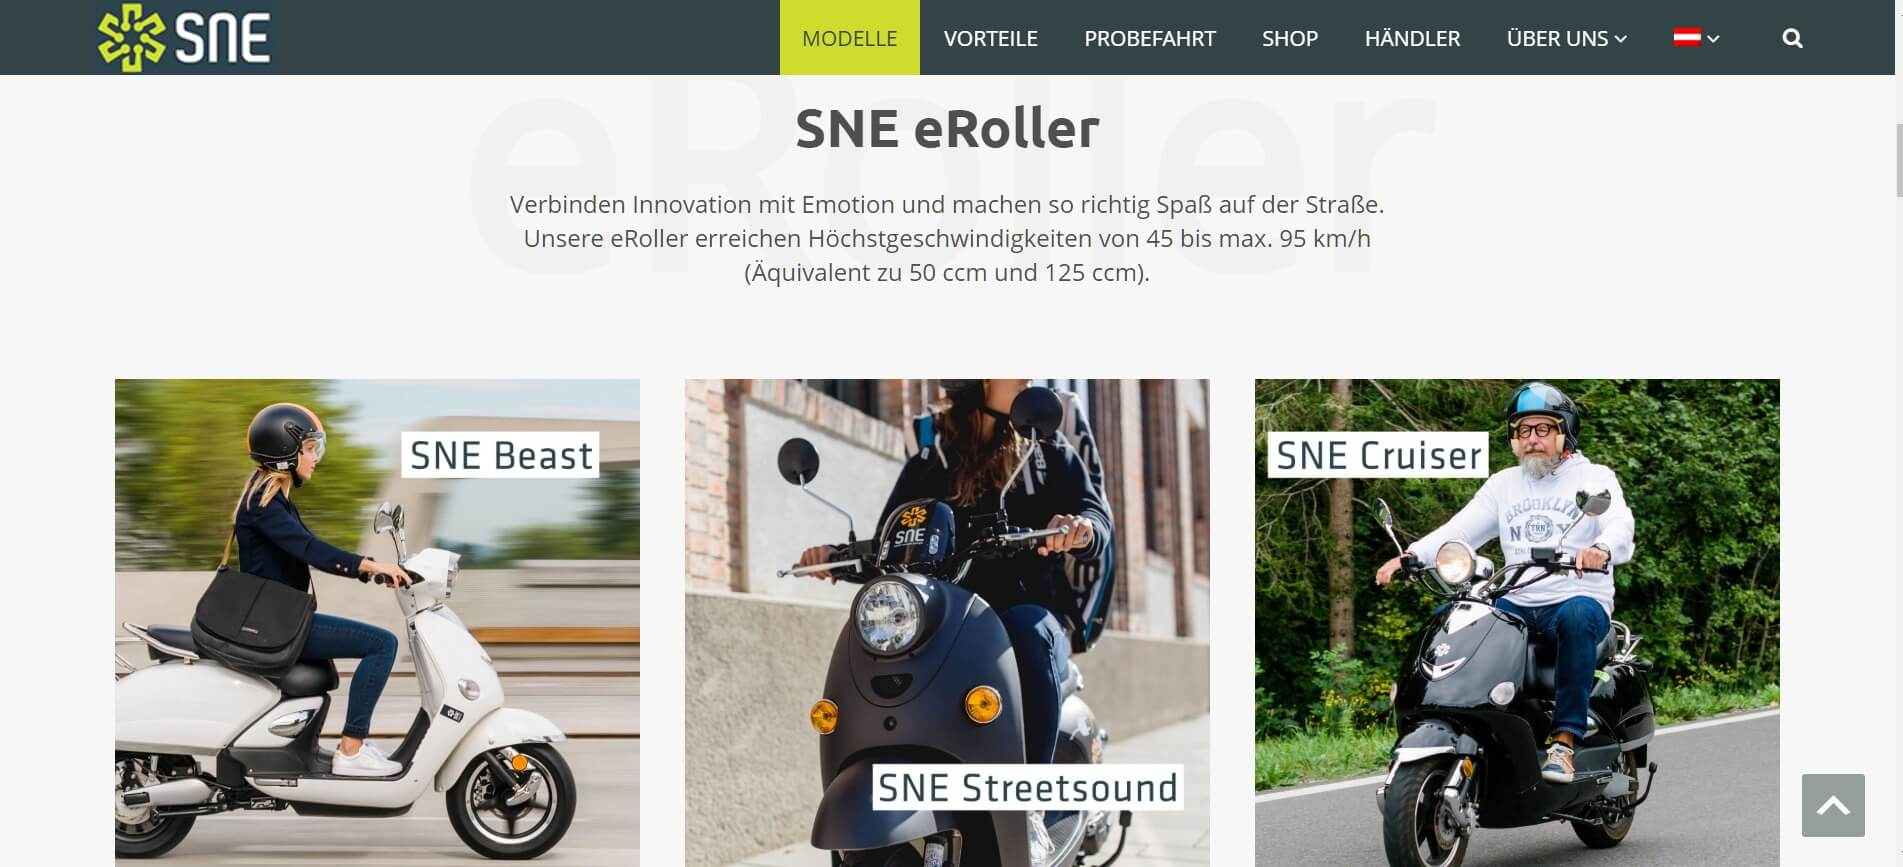 Appscooter SNE